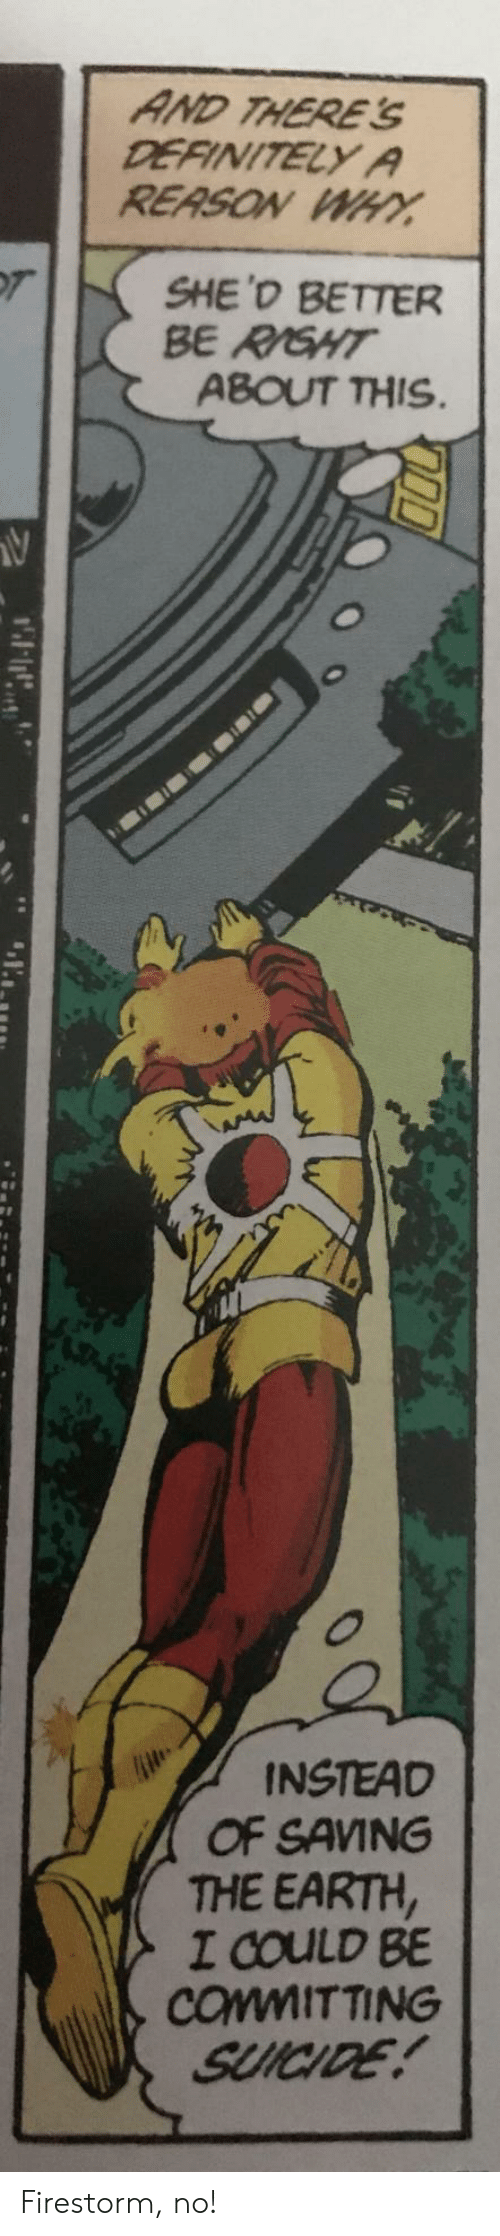 Definitely, Earth, and Suicide: AND THERE'  DEFINITELY A  REASON WHY  T  SHE'D BETTER  BE RISHT  ABOUT THIS.  INSTEAD  OF SAVING  THE EARTH,  I COULD BE  COMMITTING  SUICIDE! Firestorm, no!